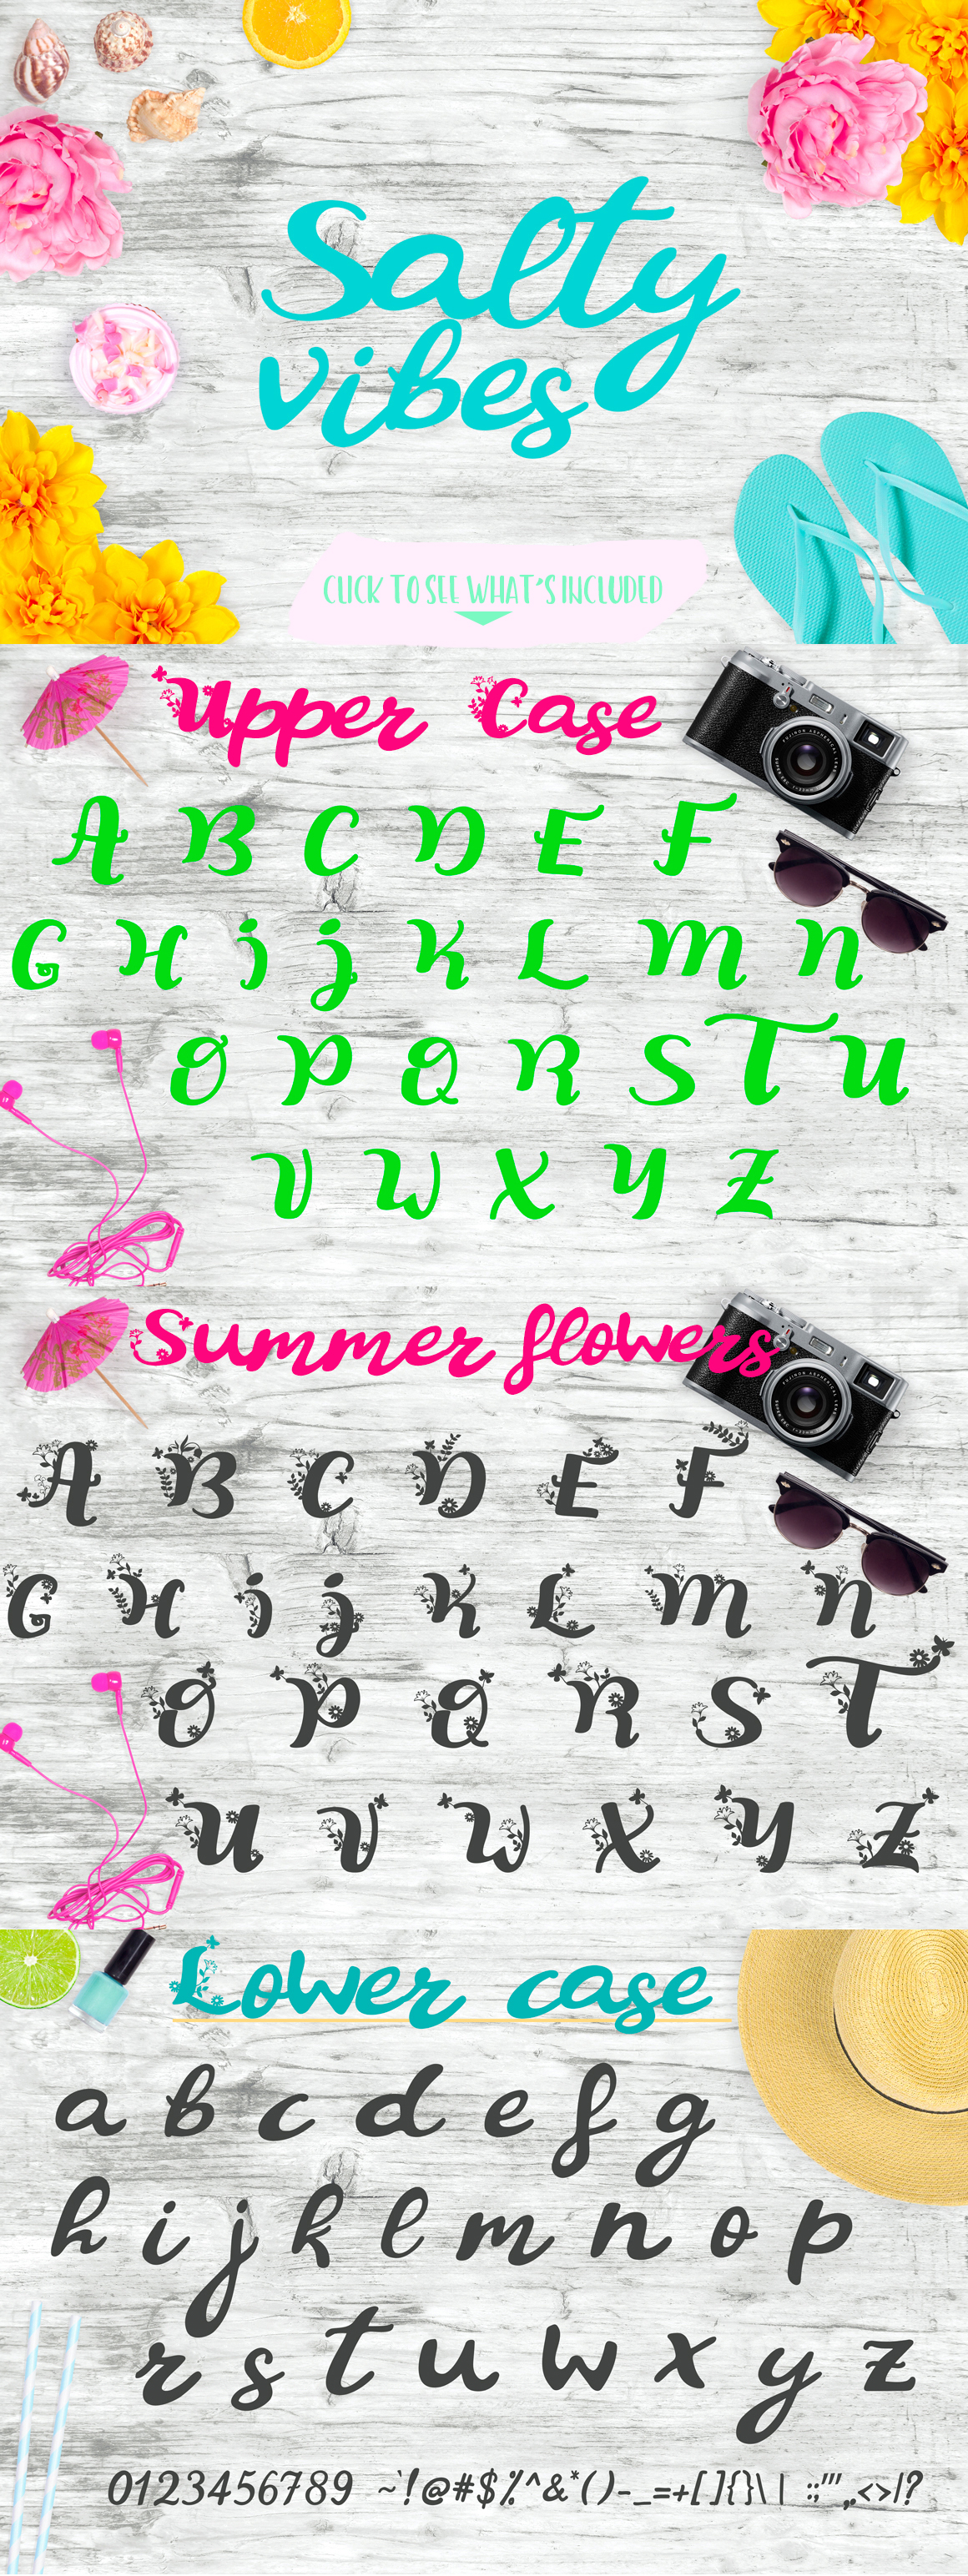 Summer Flowers Fun and Flowery Font example image 3